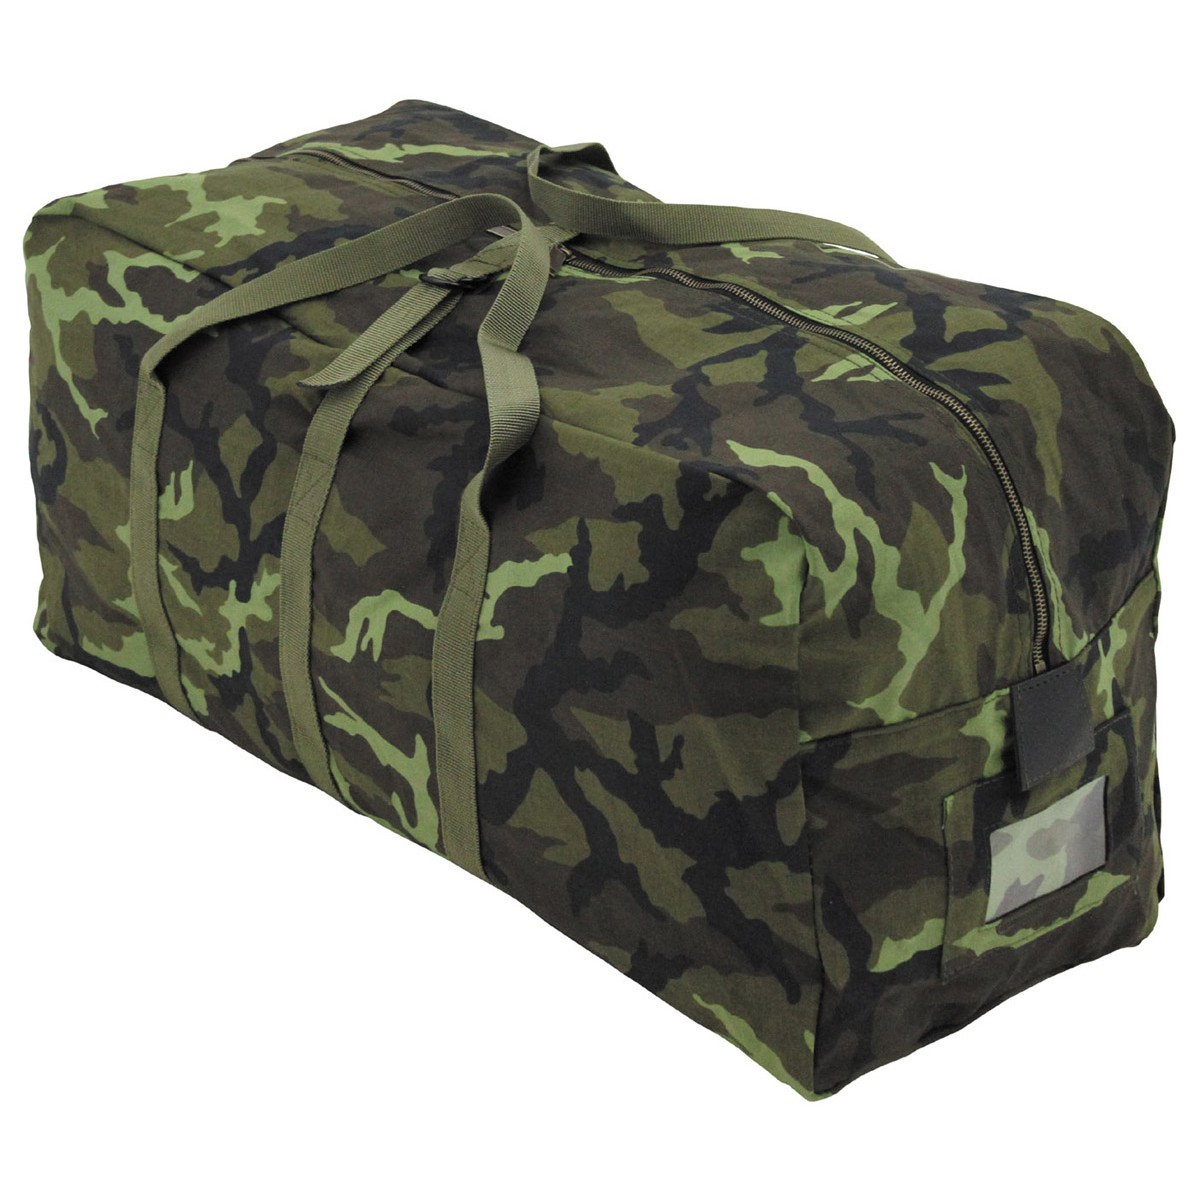 Czech Army Camo Pattern M95 Large Transport Field Bag 52L